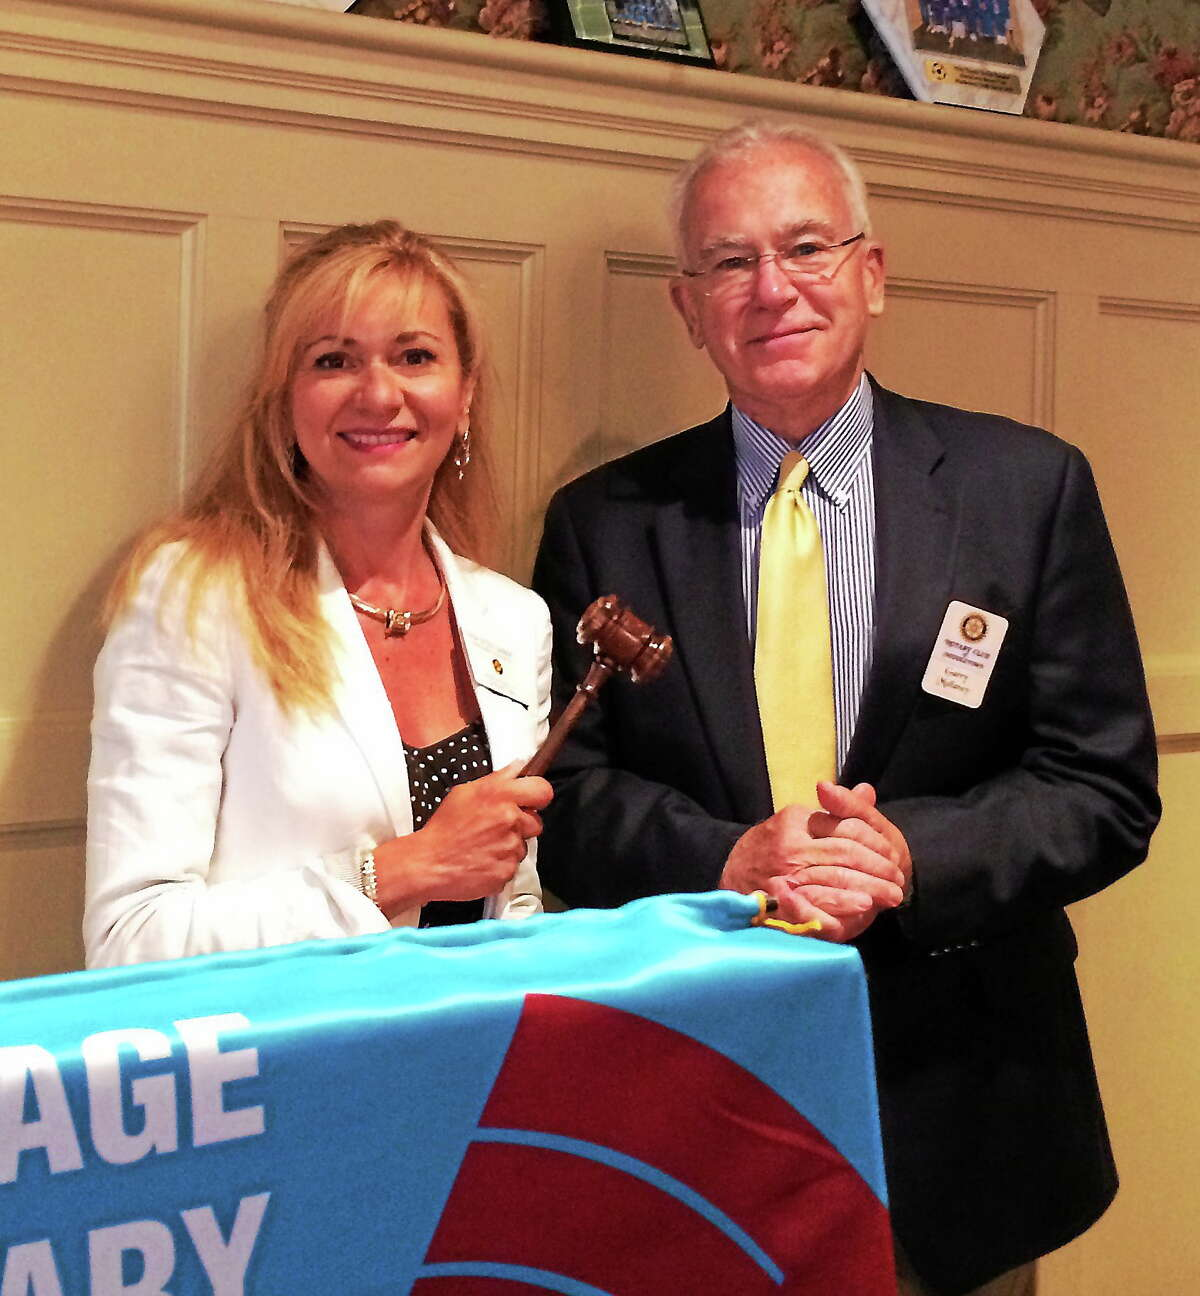 The Middletown Rotary Club welcomes Trish Witzky-Lambert as the club's 91st president for 2014-15 and thanks Garry Mullaney for his leadership and dedication in 2013-14.